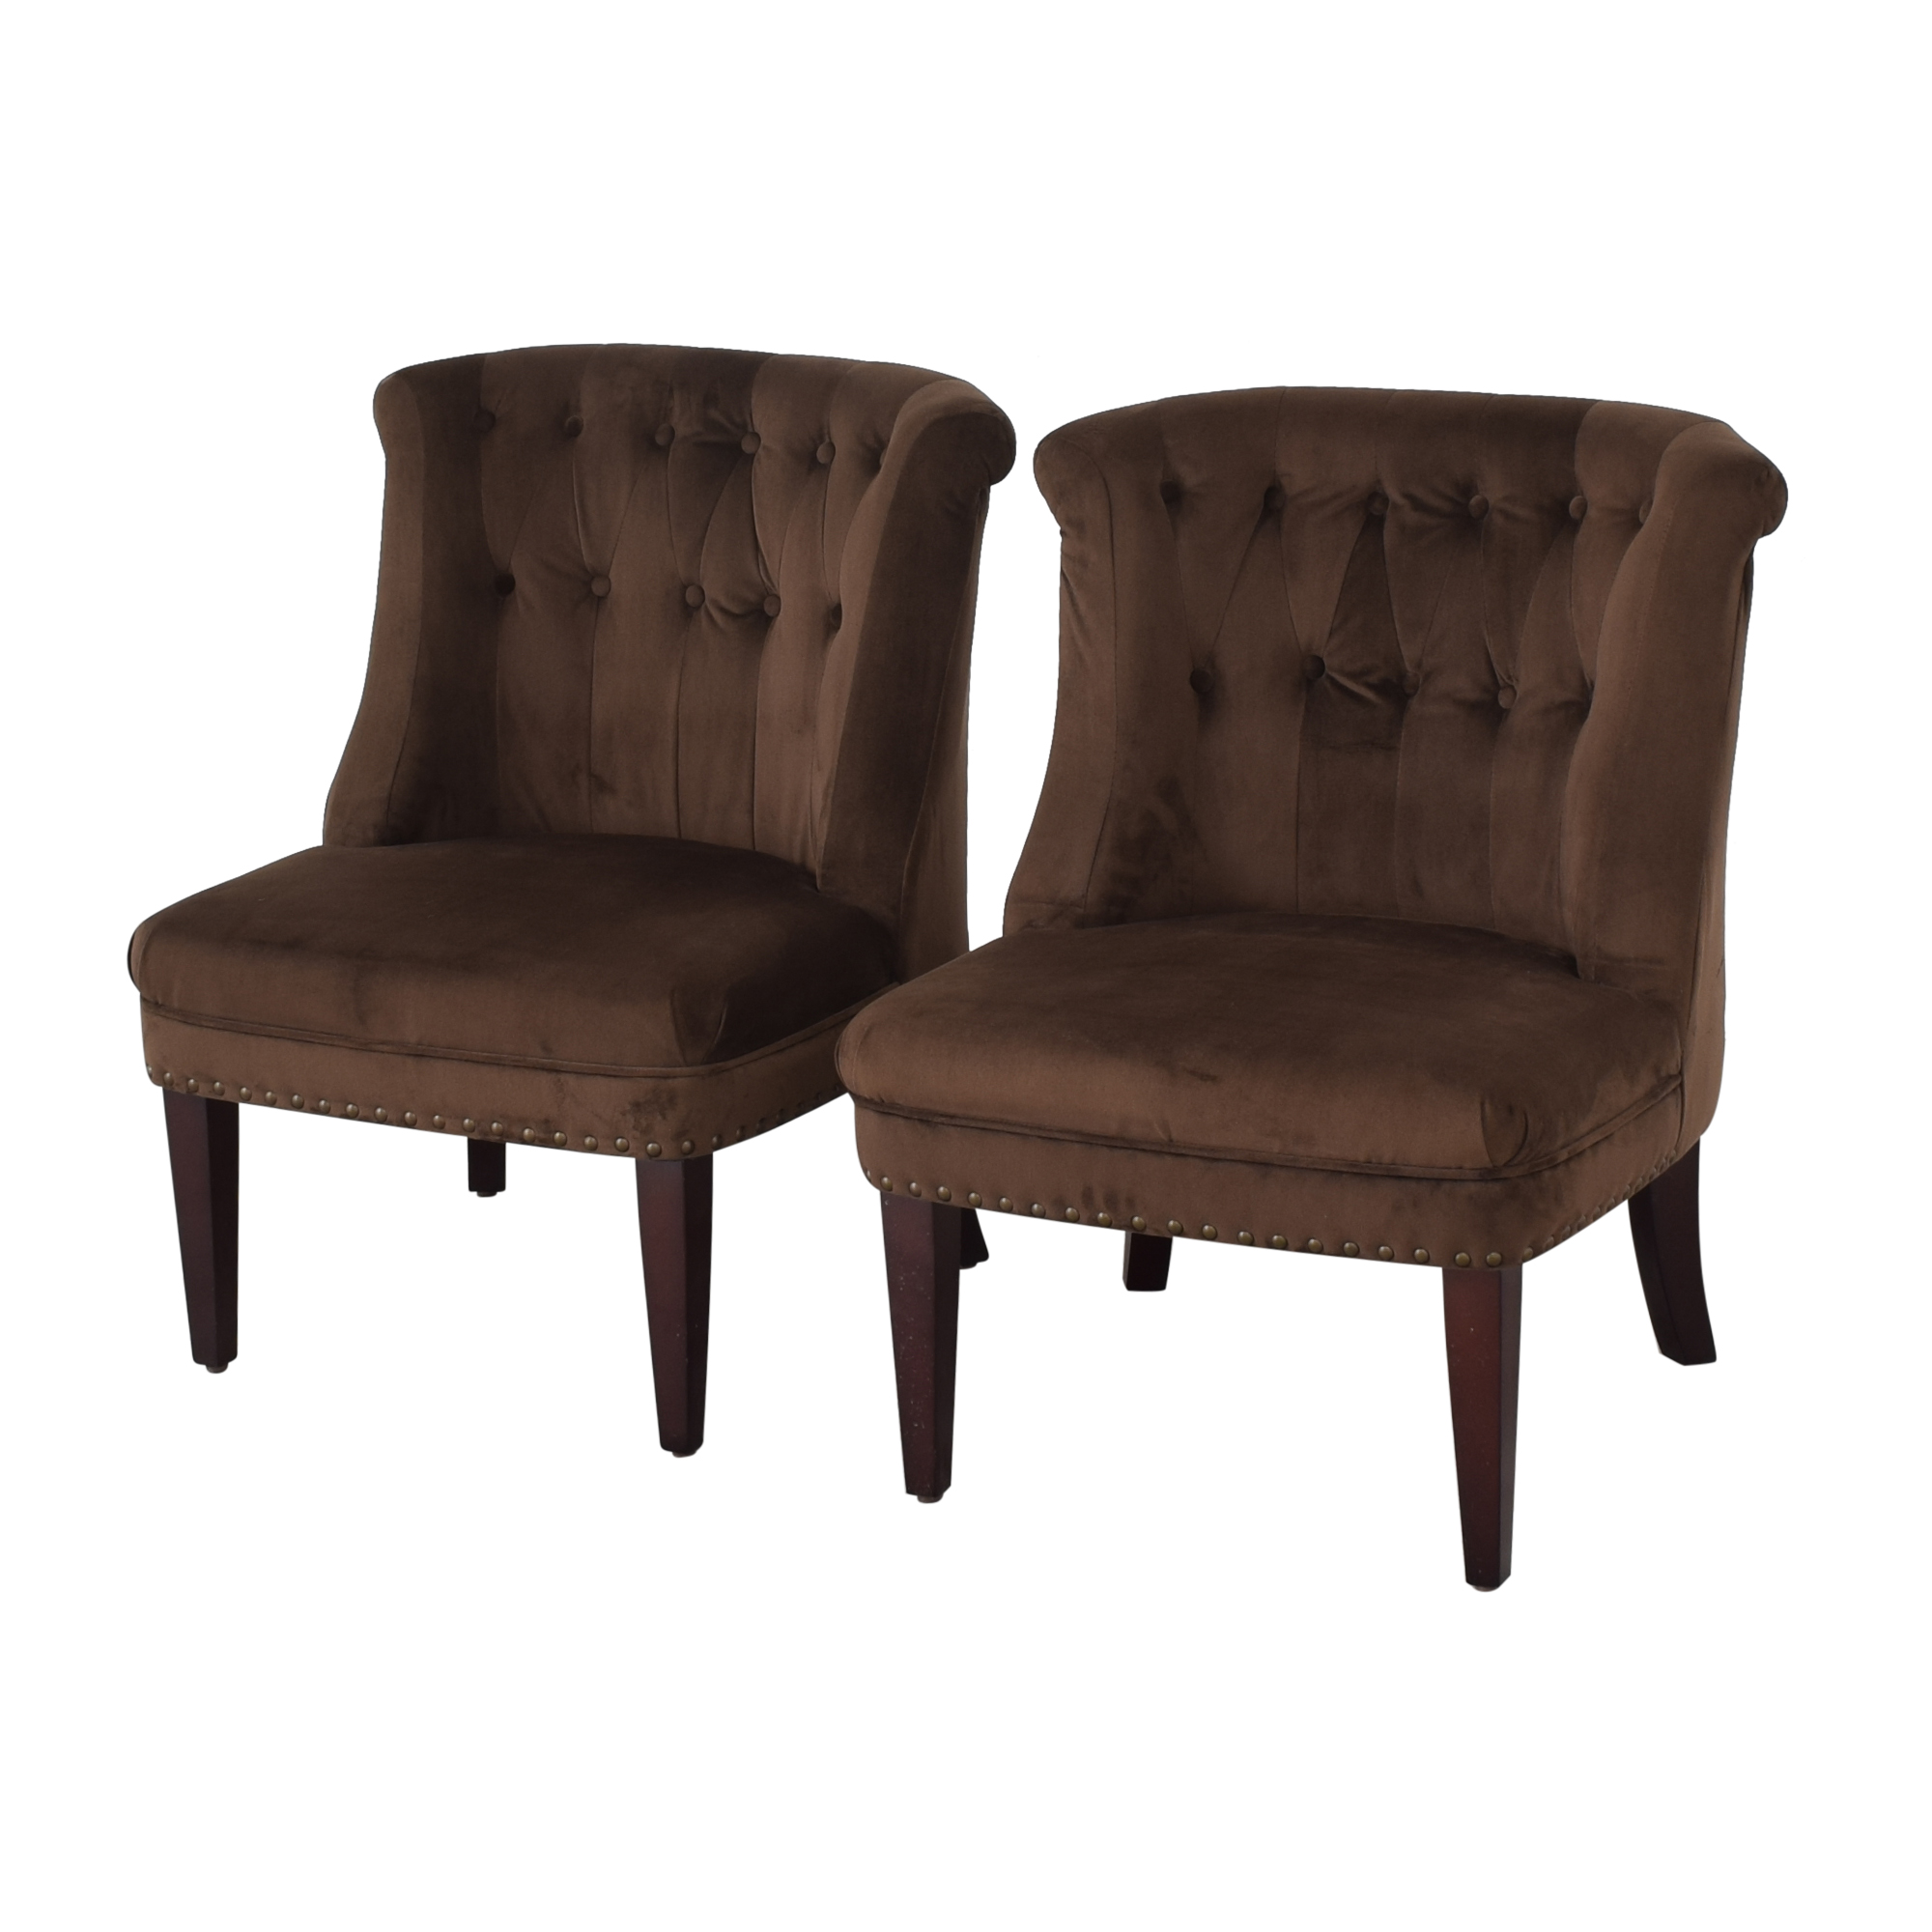 Office Star Accent Chairs / Chairs